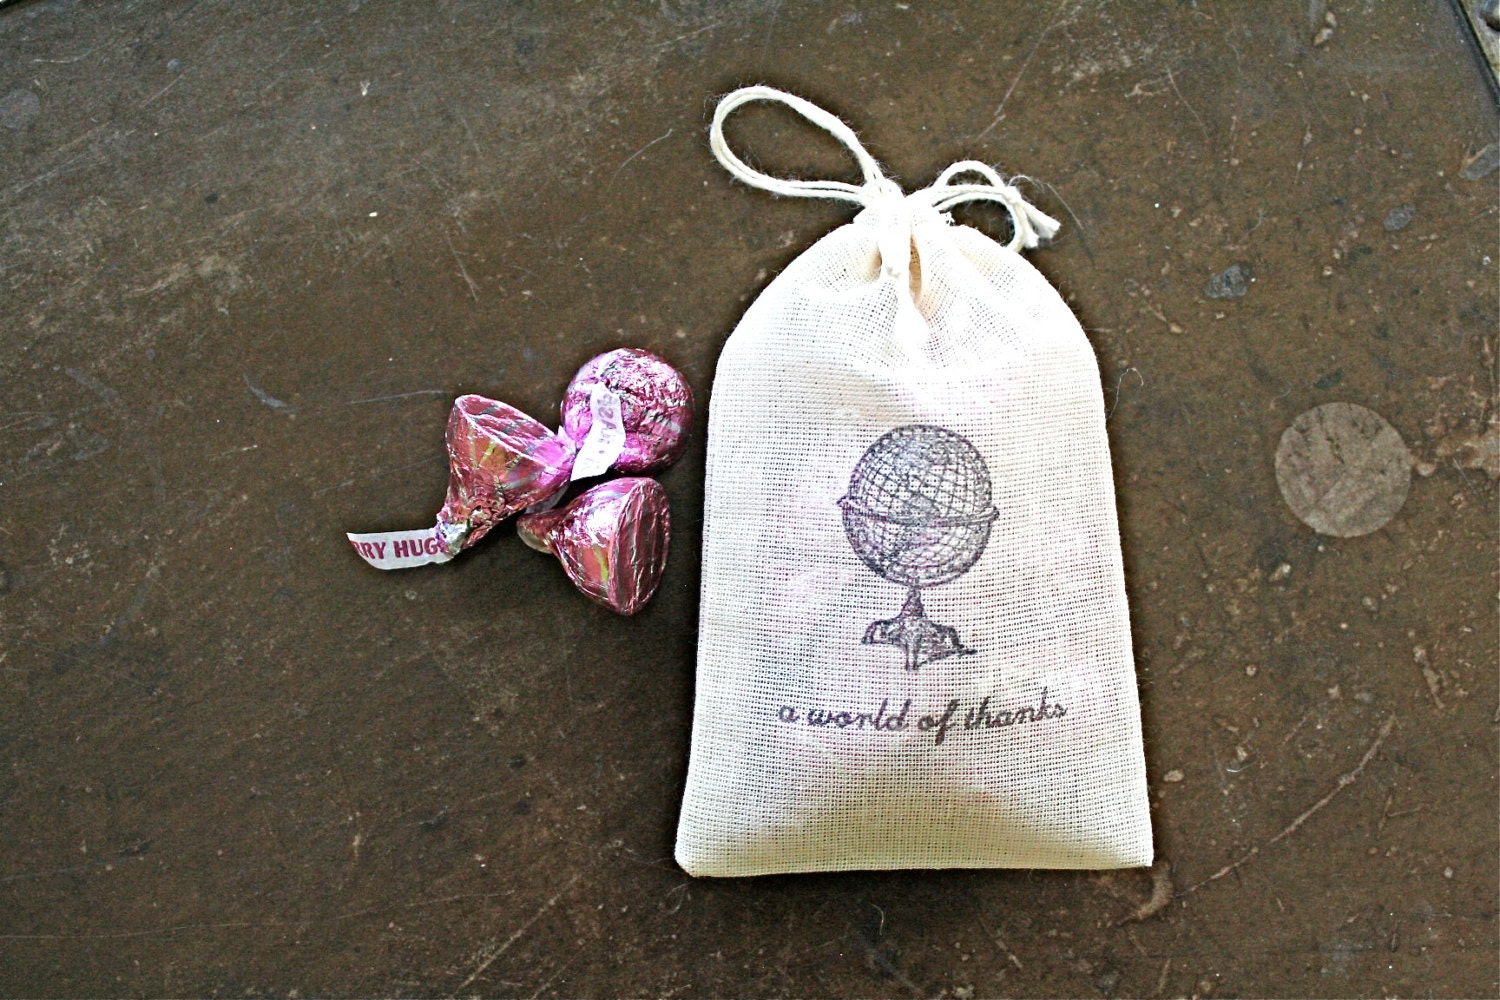 Wedding favor bags 3x4.5. Set of 50 double drawstring muslin